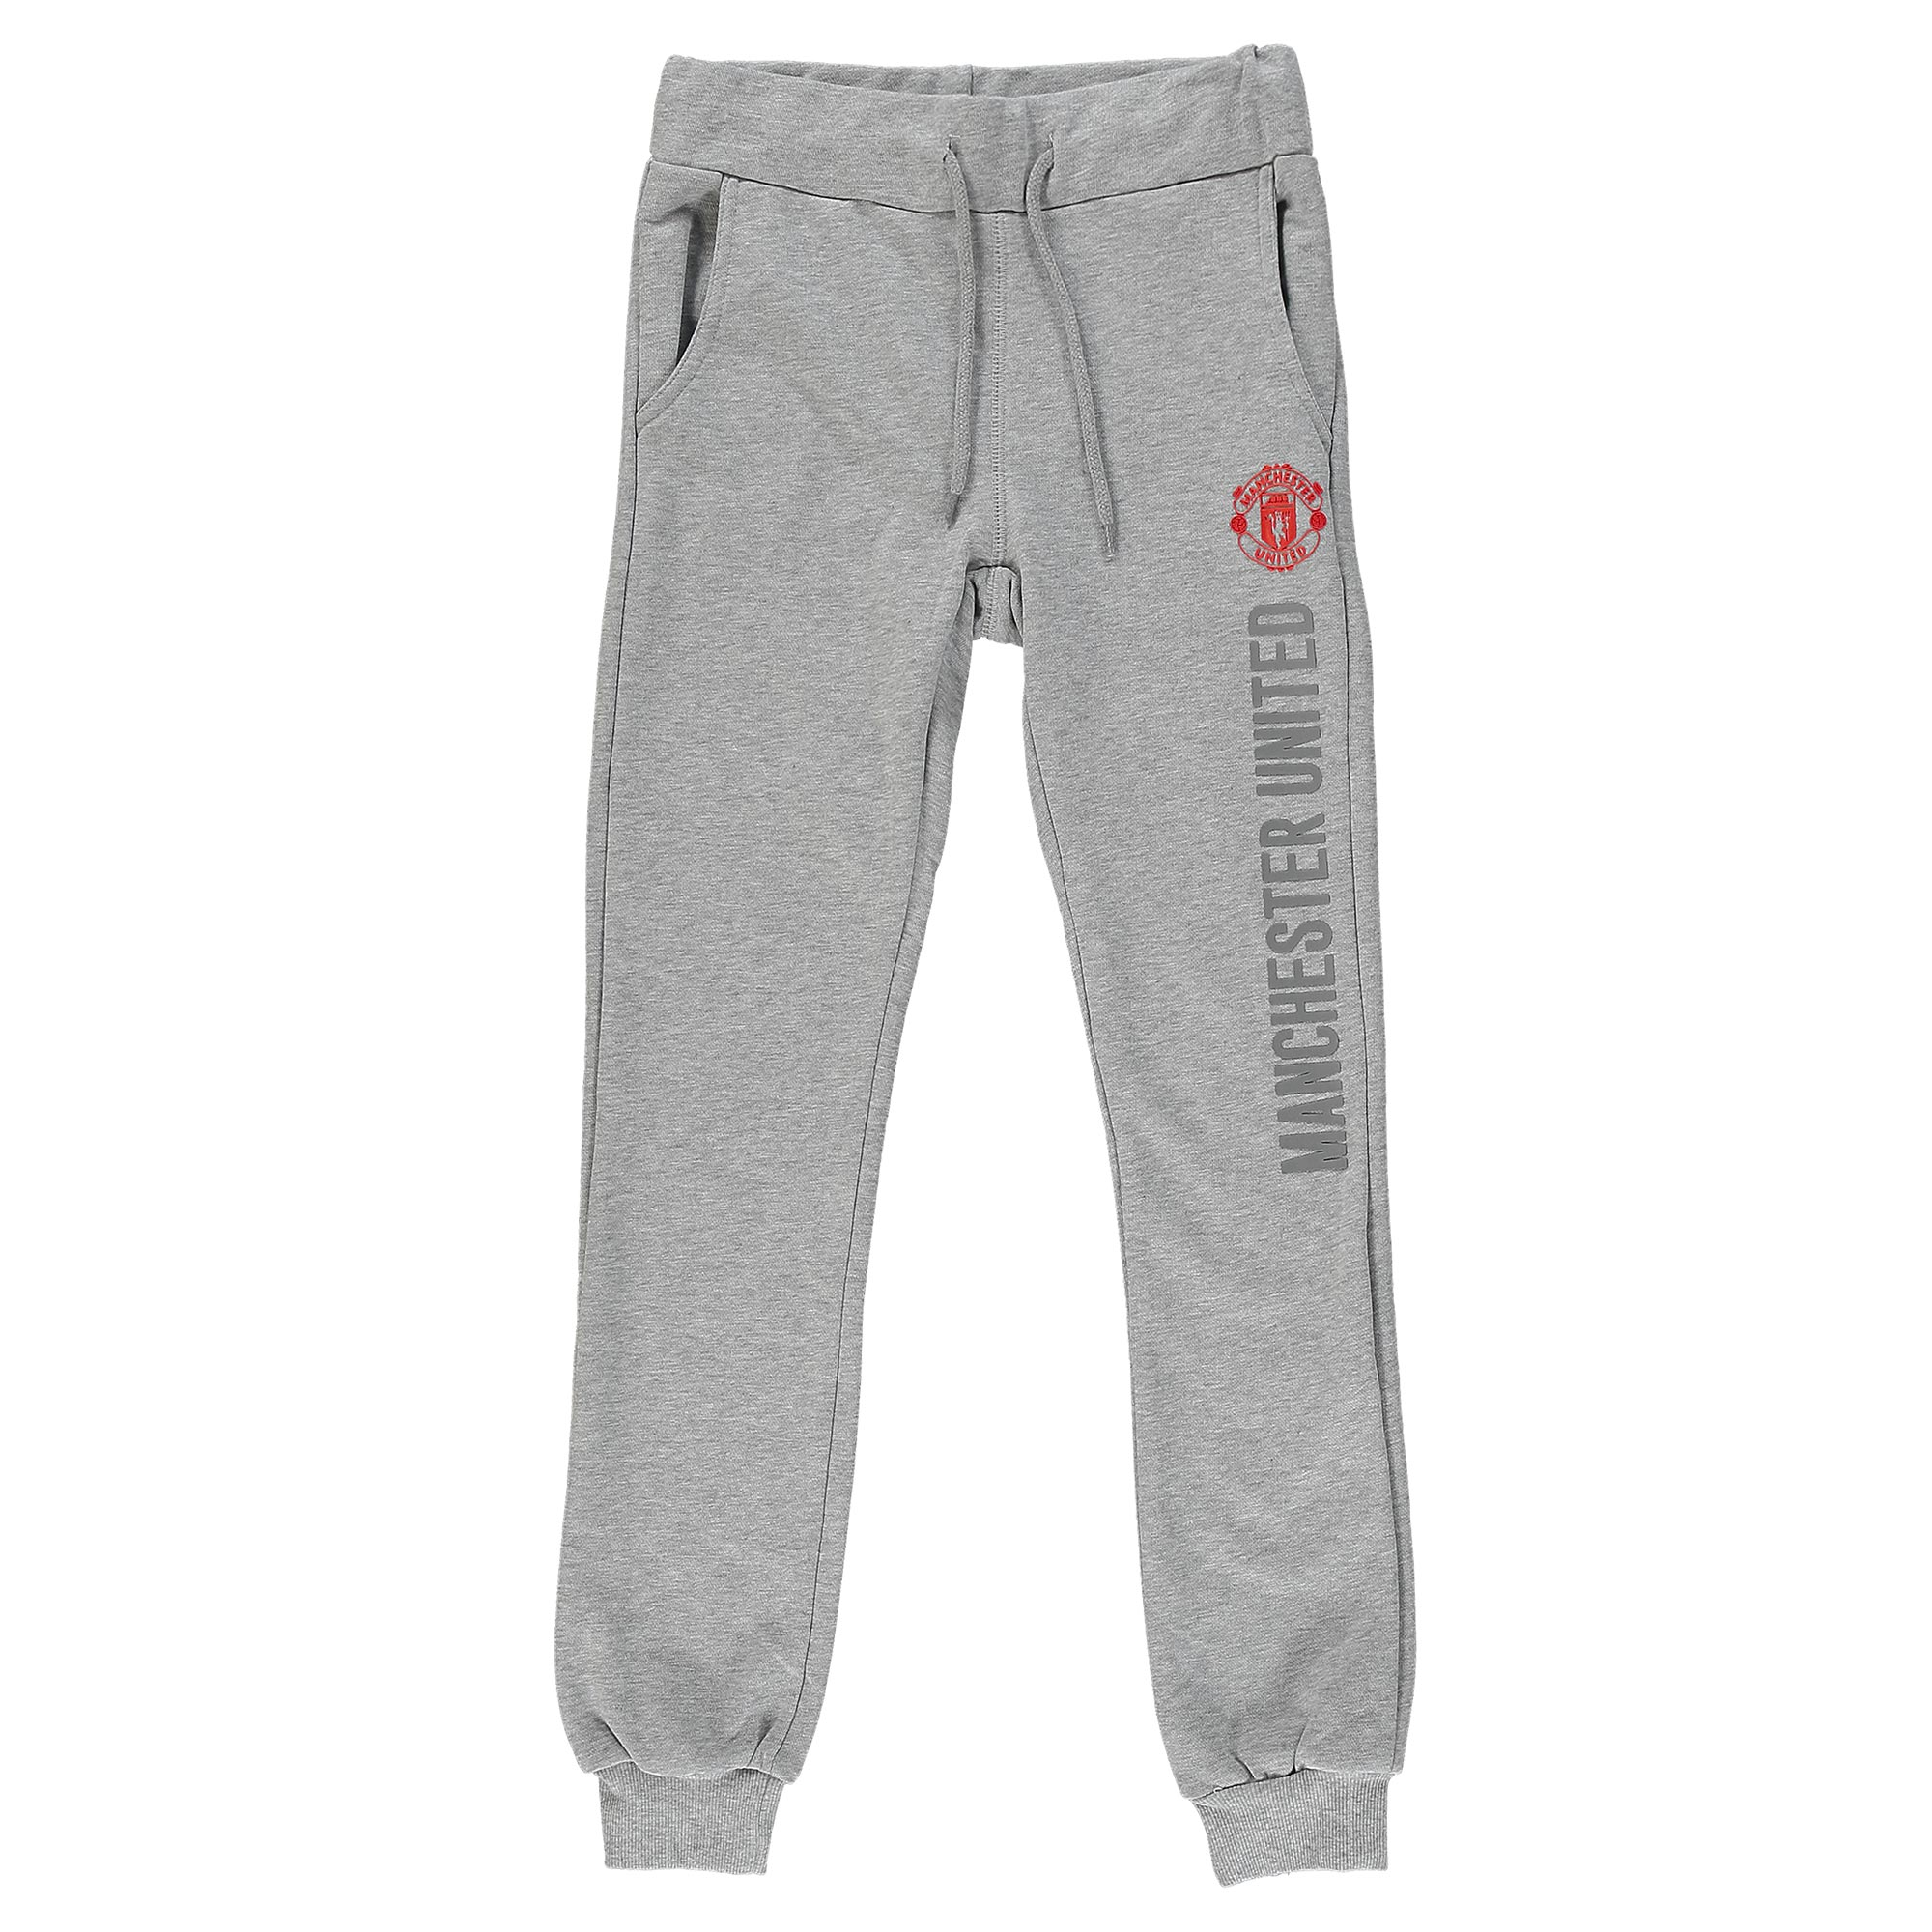 Manchester United Joggers - Grey - Girls